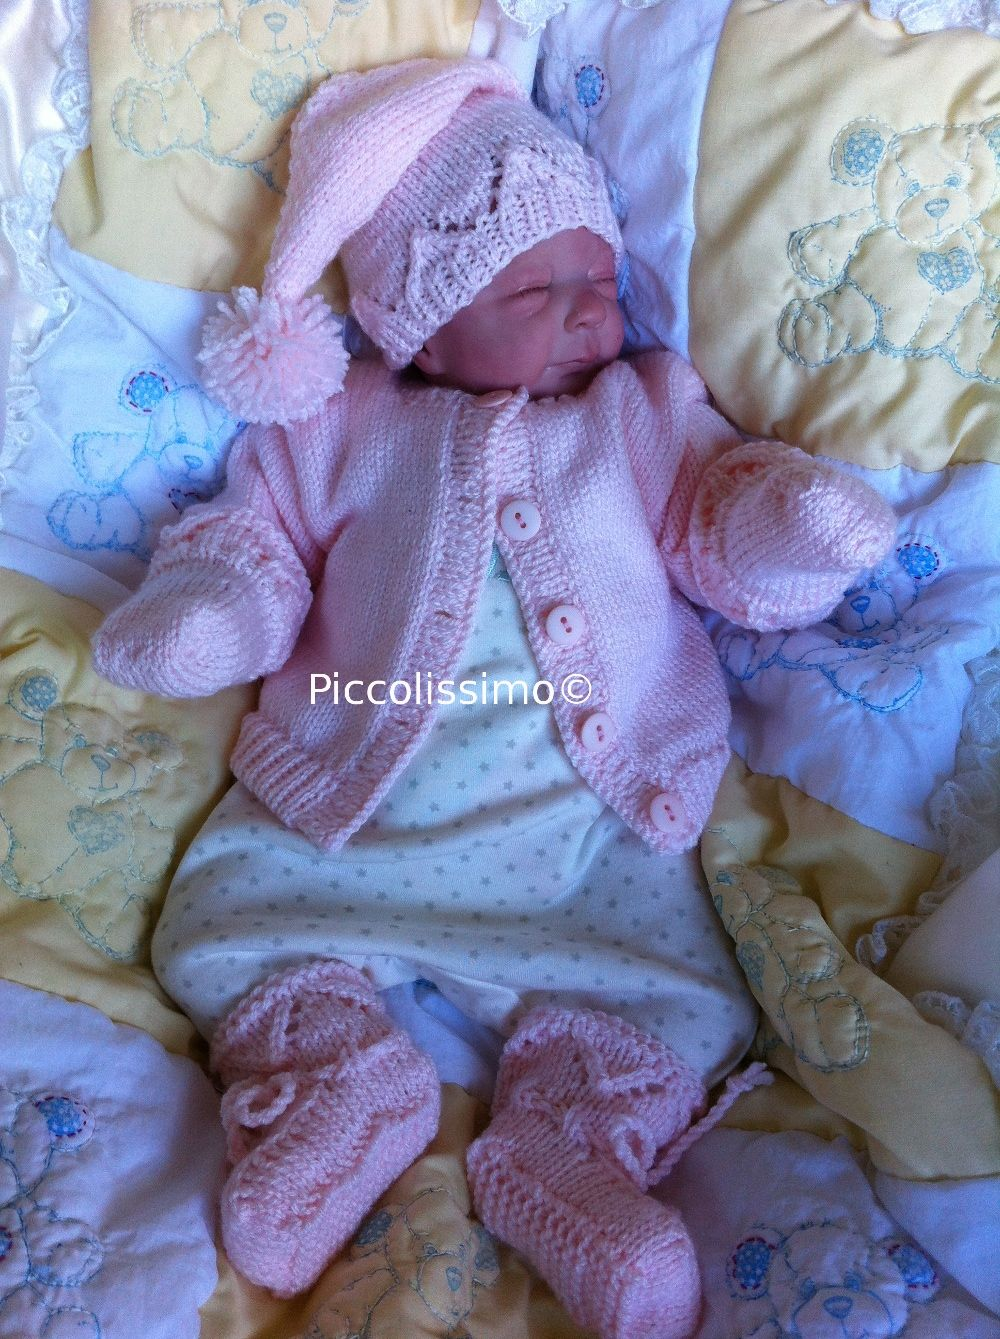 Knitting Patterns For Nicu Babies : pink knitted set 4 piece Big preemie Piccolissimo knitting for preemies P...